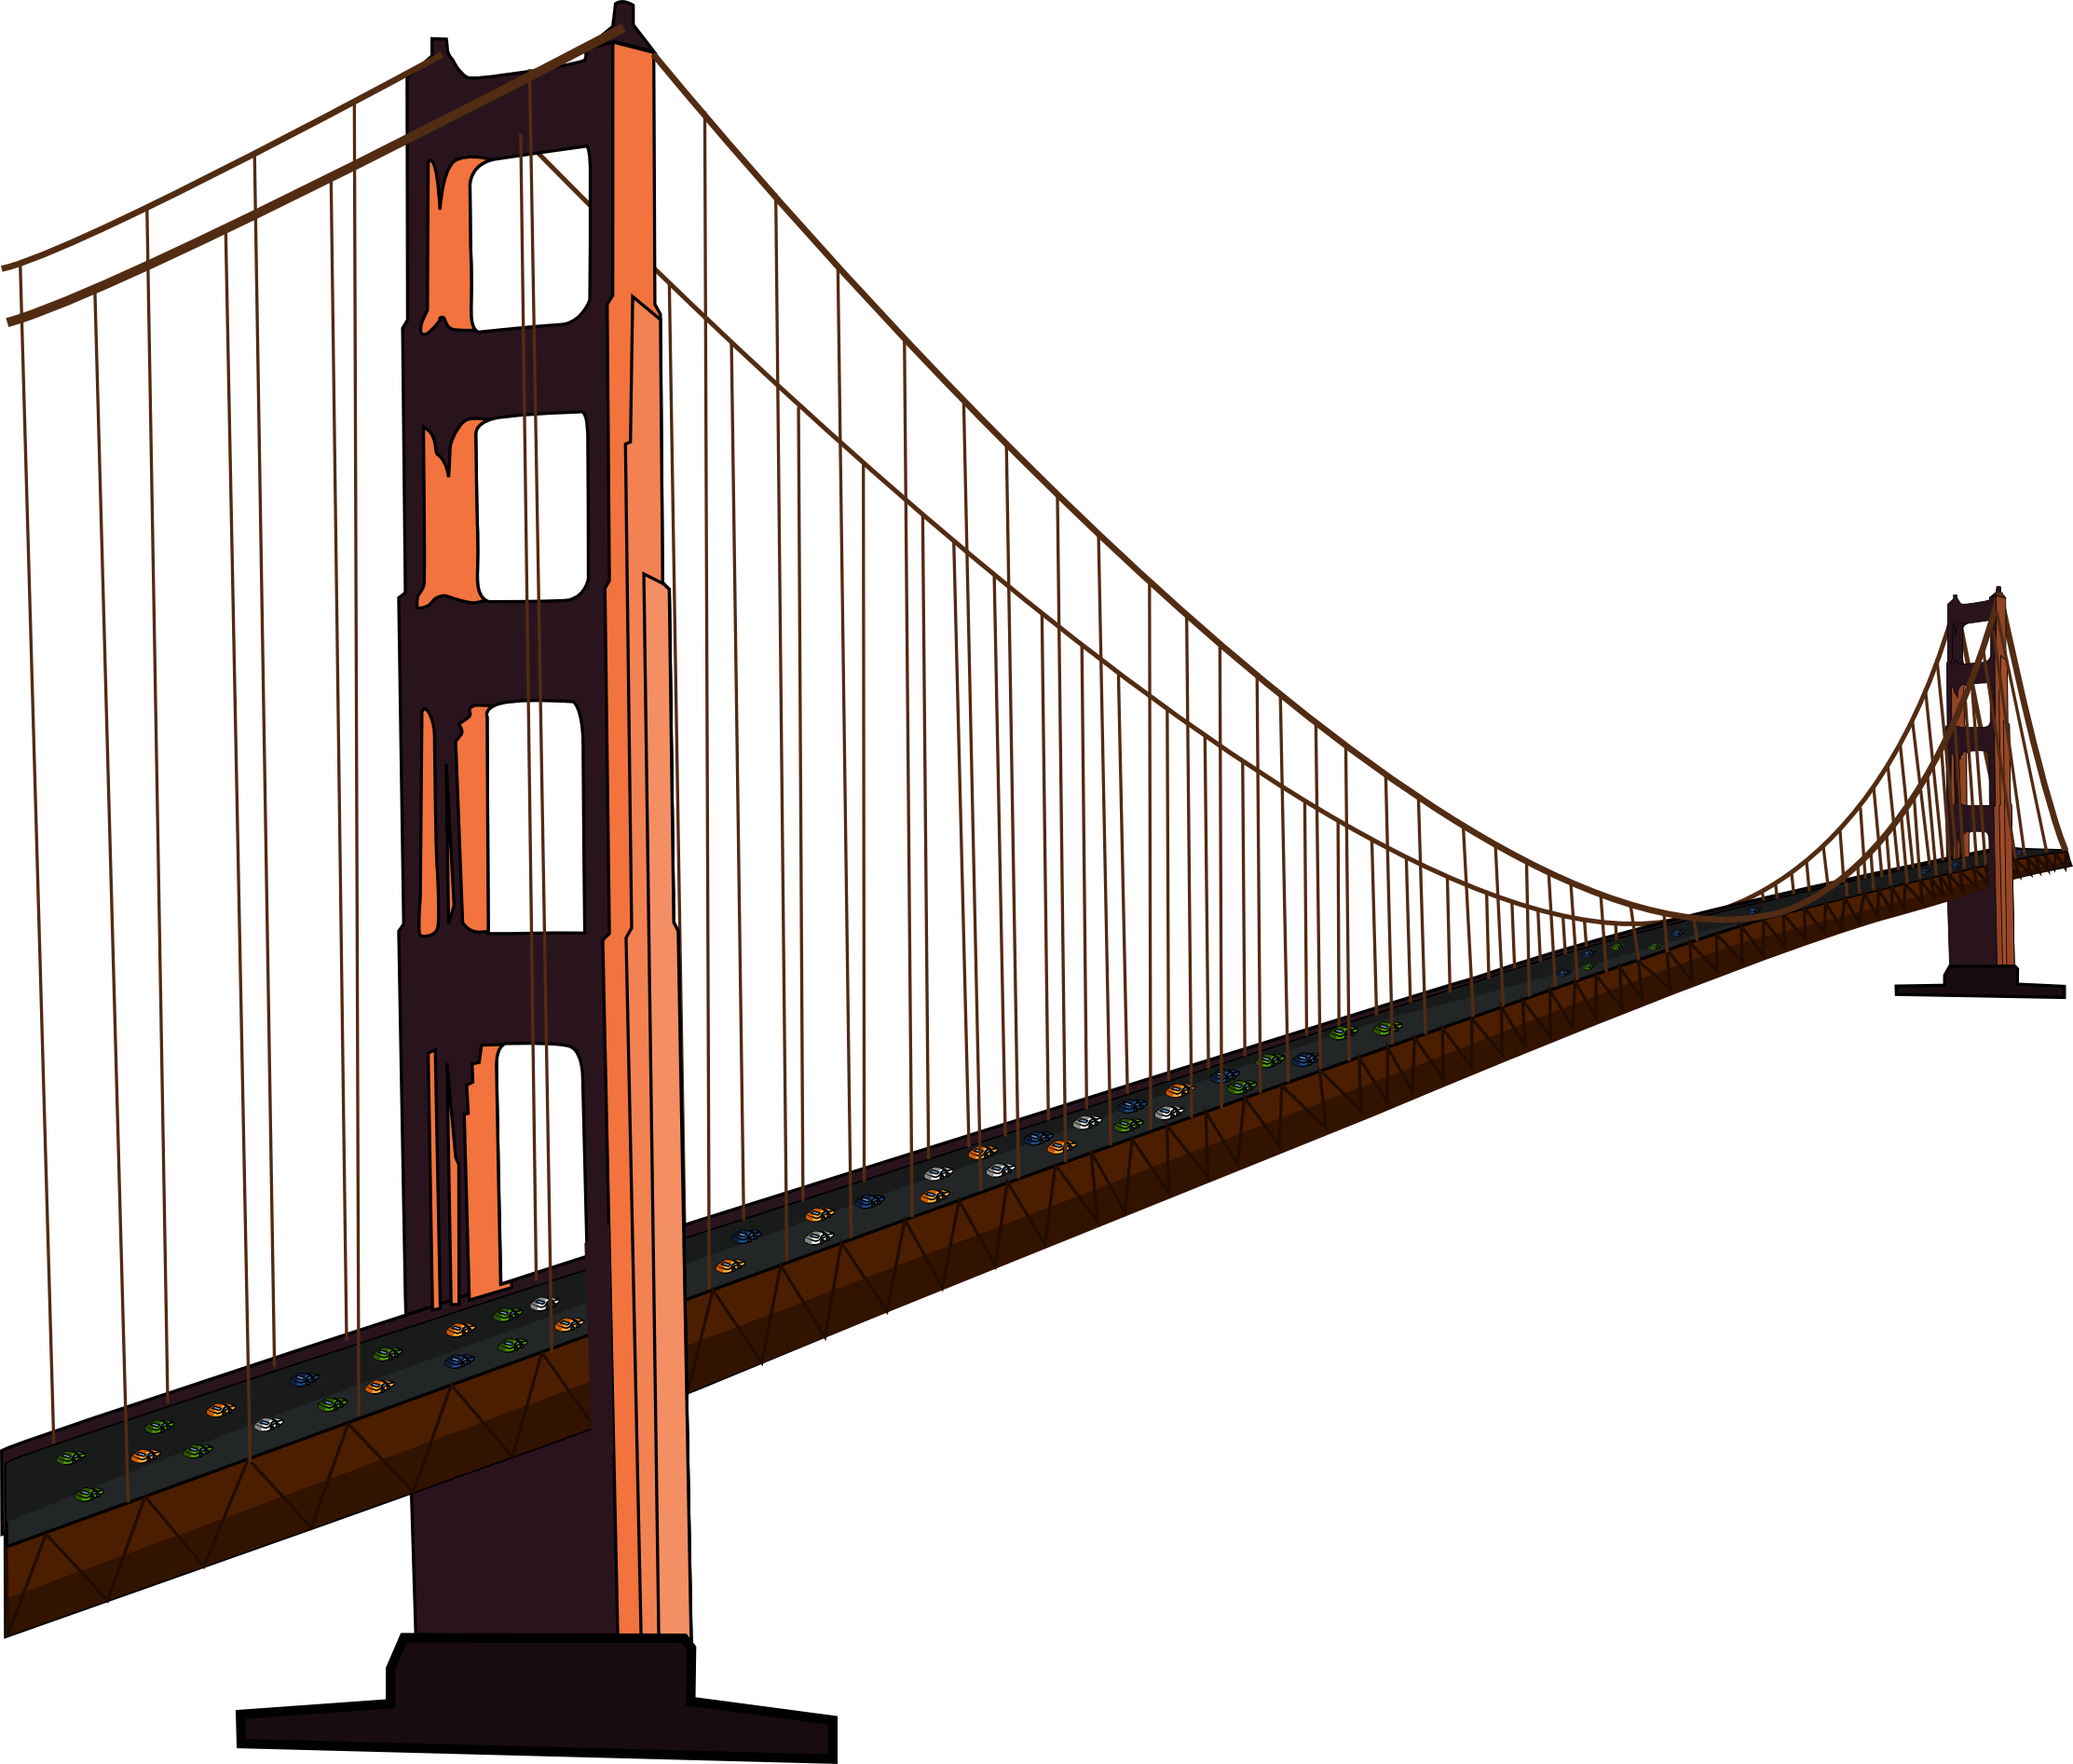 free golden gate bridge clip art clip art 2 pinterest golden rh pinterest com golden gate bridge clipart black and white Golden Gate Bridge SVG